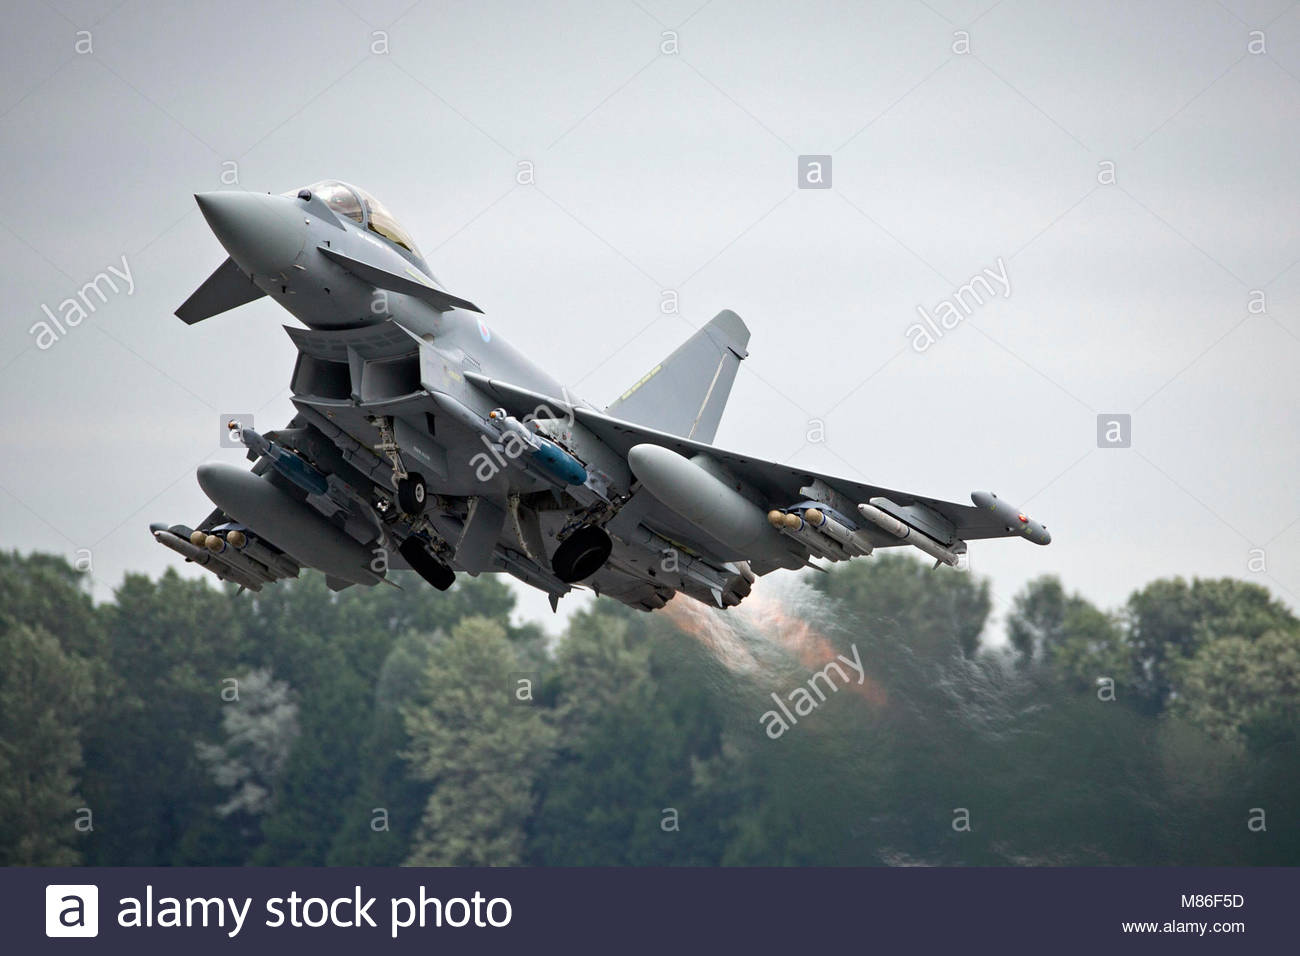 Royal Air Force Typhoon FGR4. Royal Air Force Typhoon FGR4 Piloted by BAE test pilot taking off from RAF Fairford - Stock Image